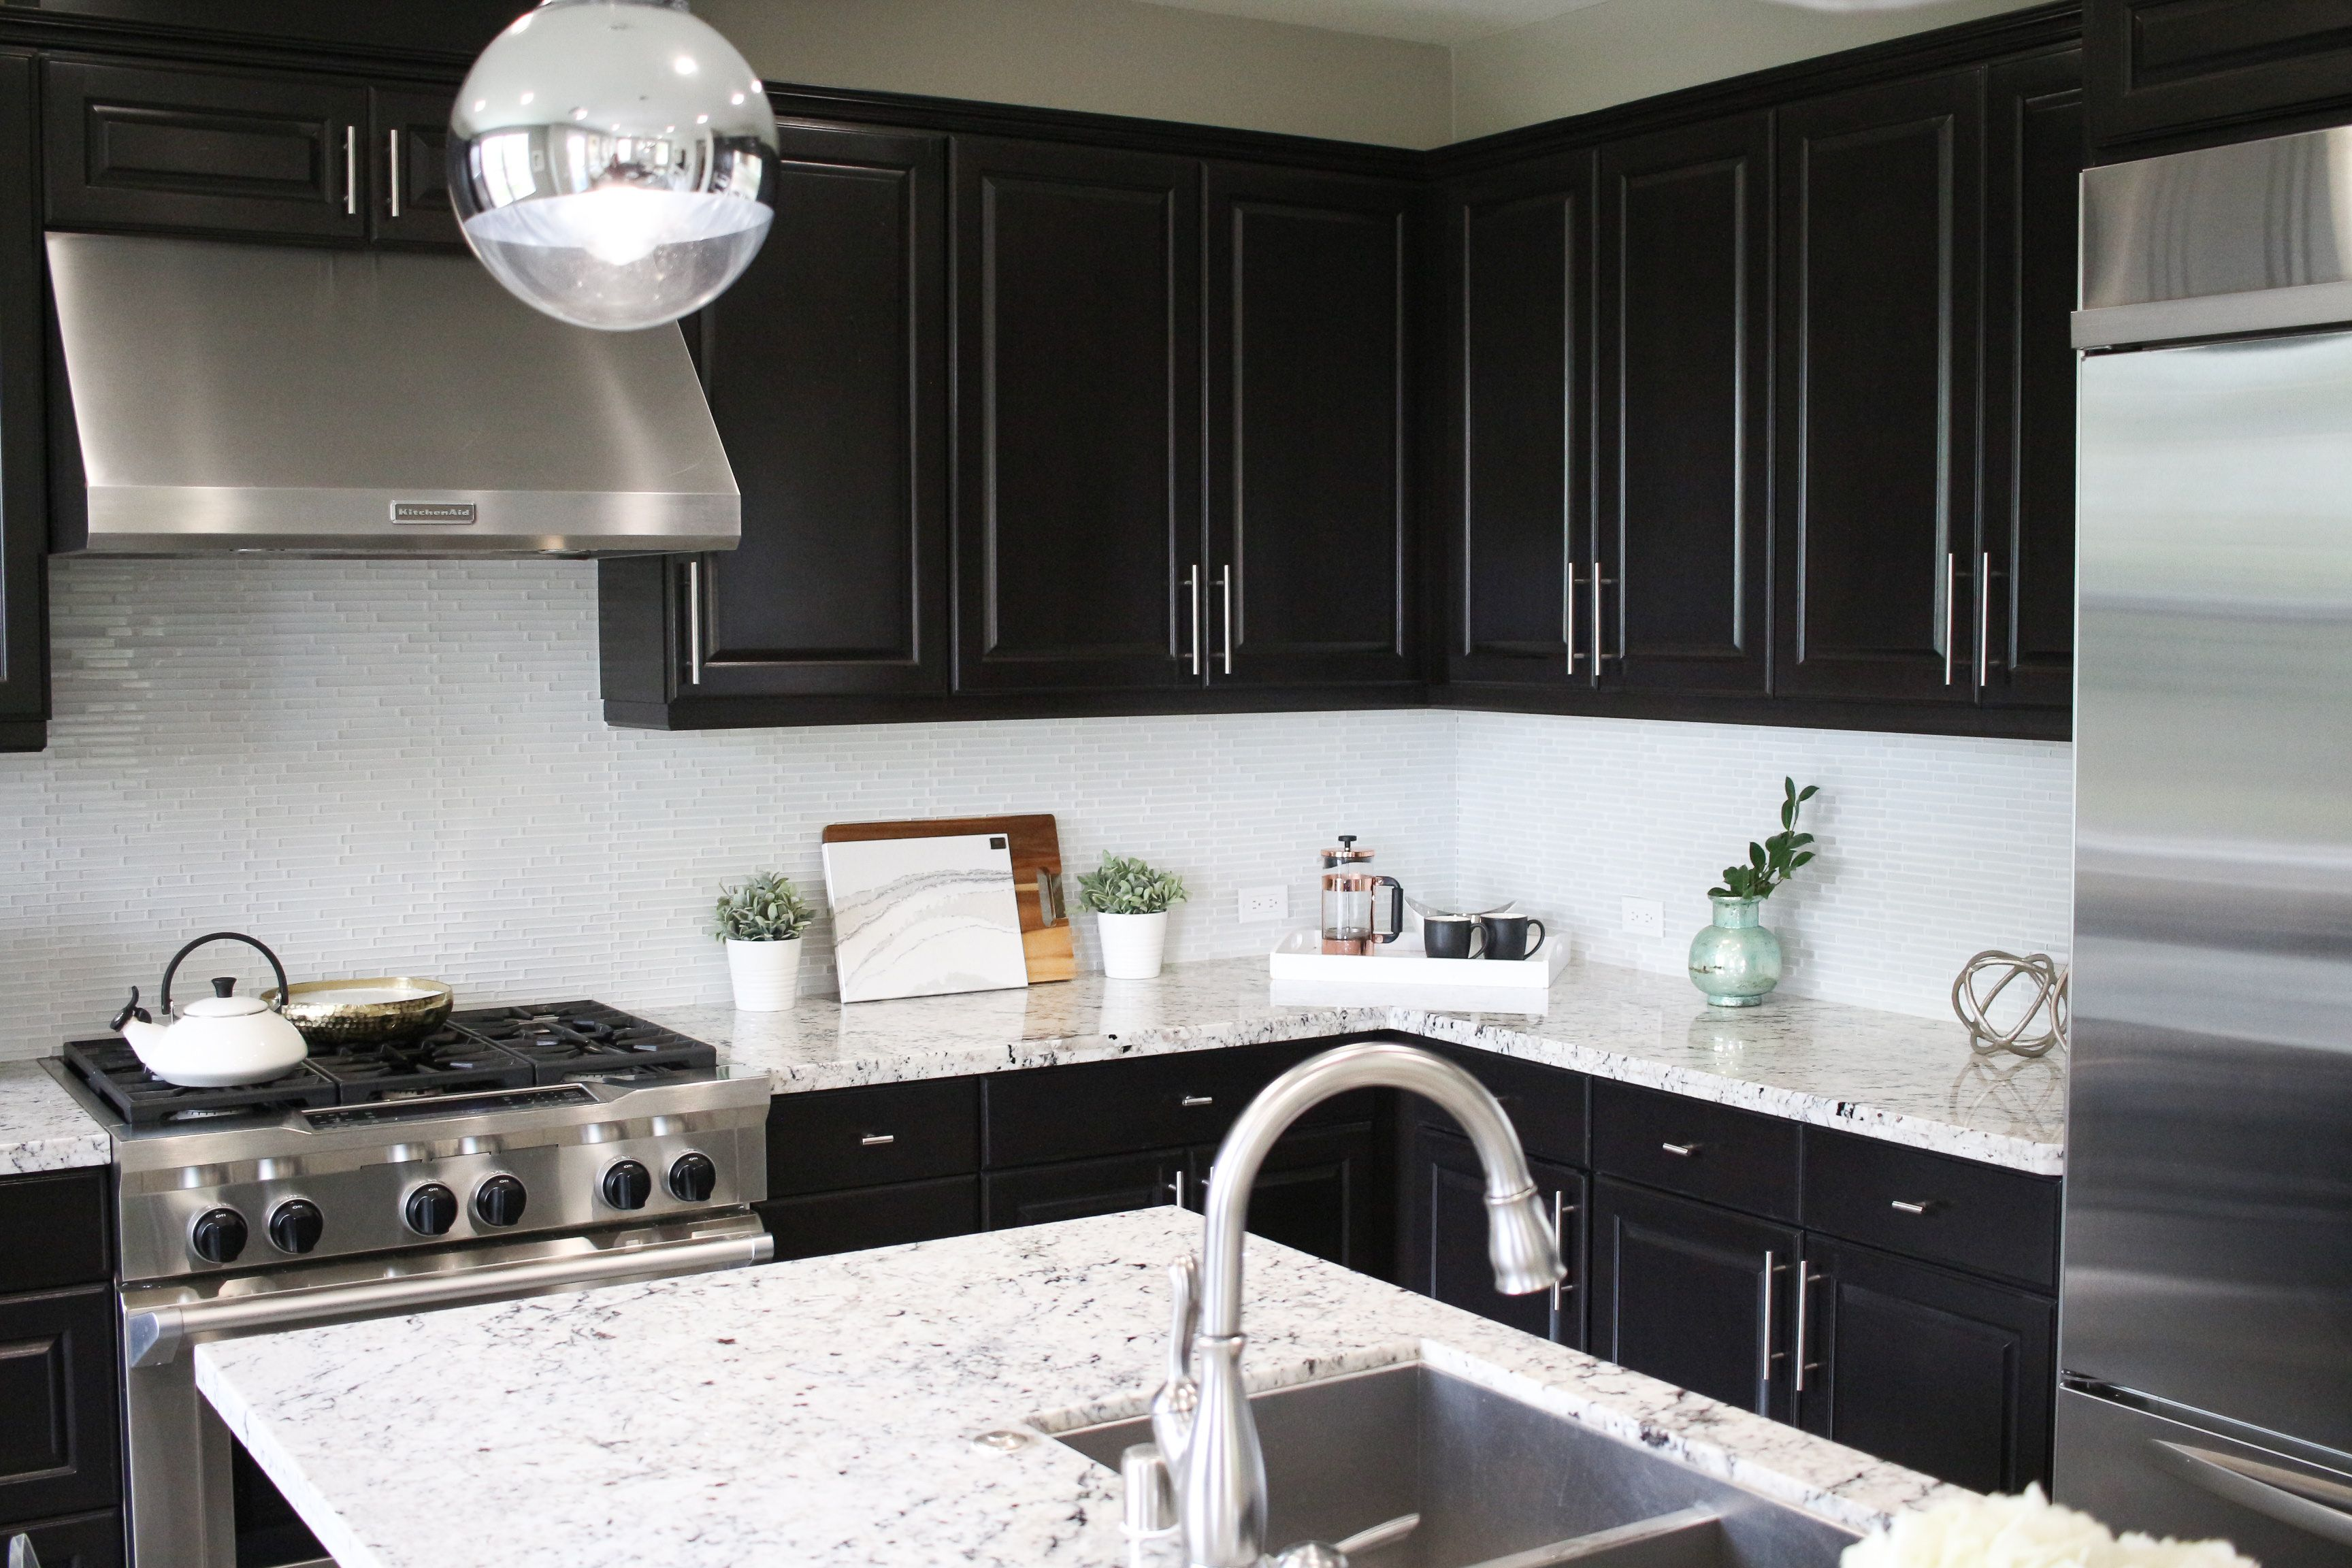 Amazing Diy Project Ideas For The Kitchen Traditional Kitchen Cabinets Clean Kitchen Cabinets Hardware Diy